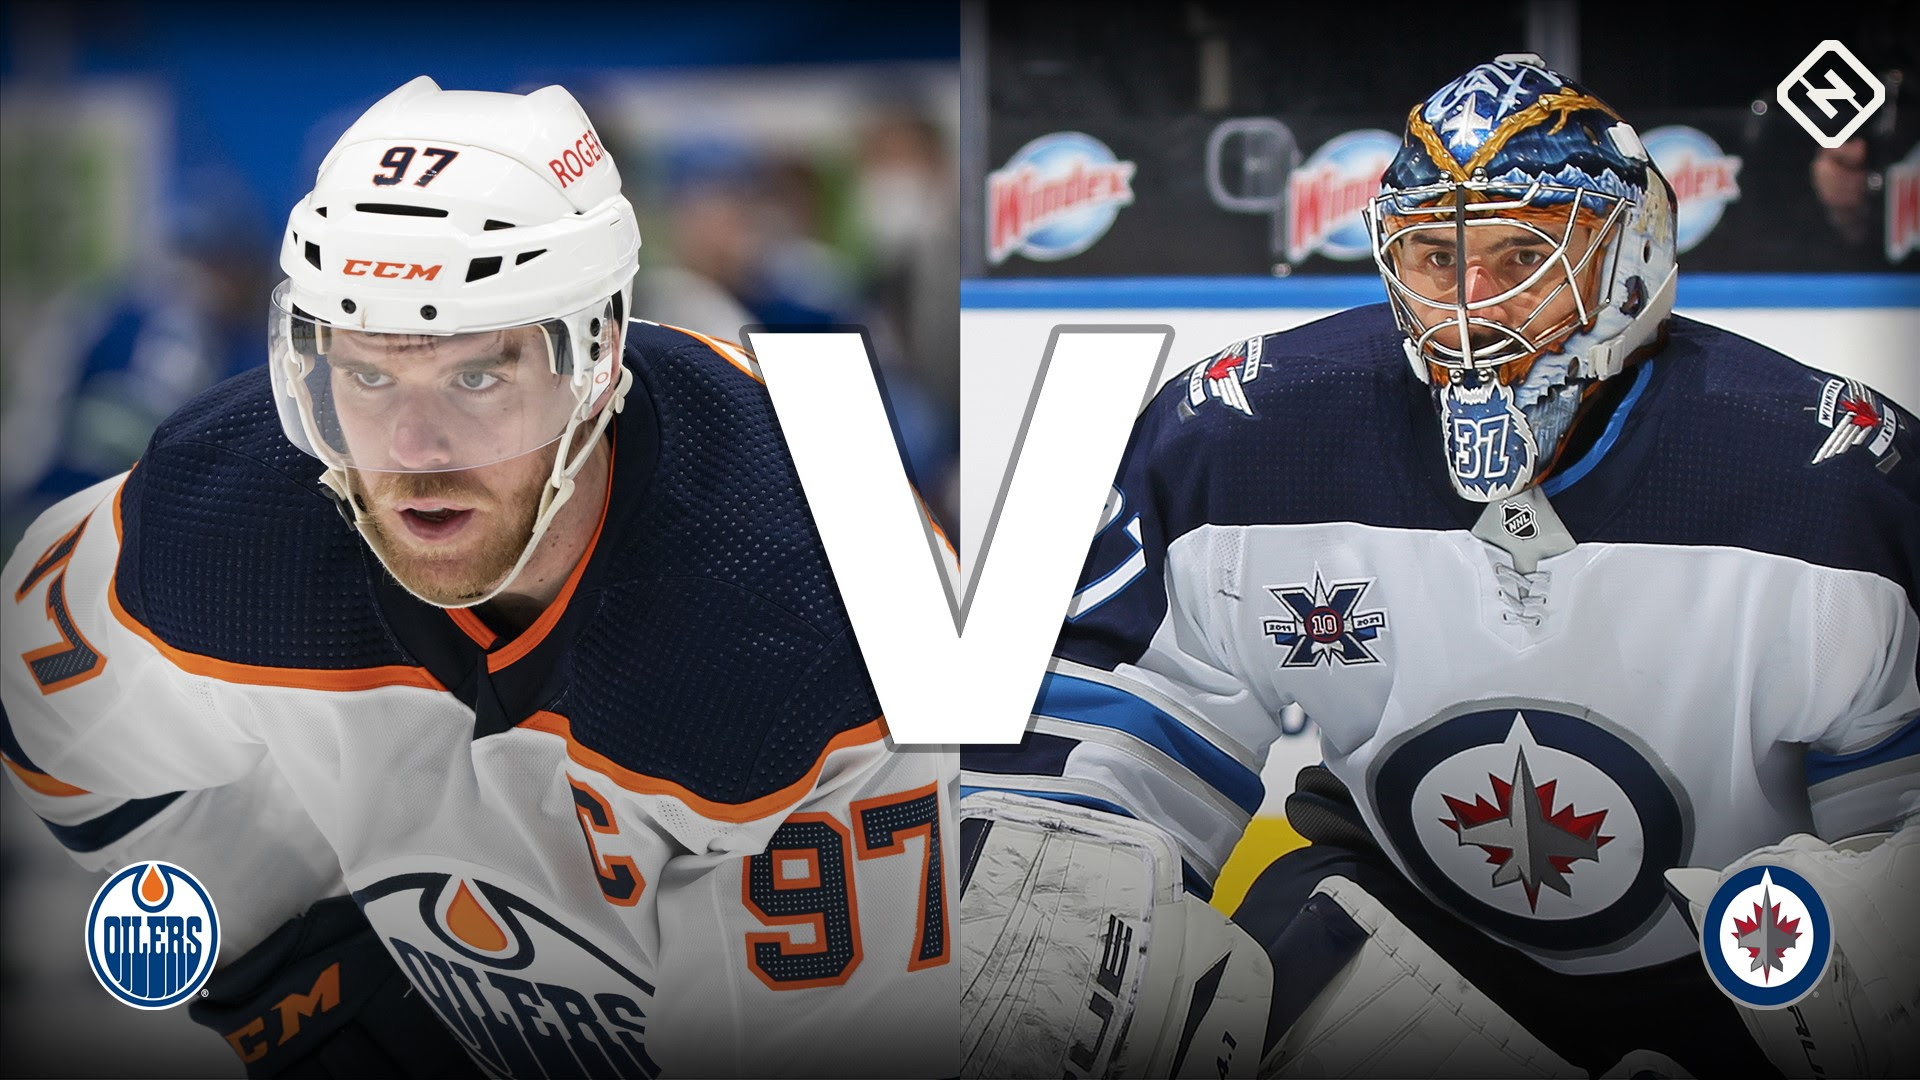 Oilers vs. Jets result: Kyle Connor's 3OT goal finishes Winnipeg sweep of Edmonton in Stanley Cup first round